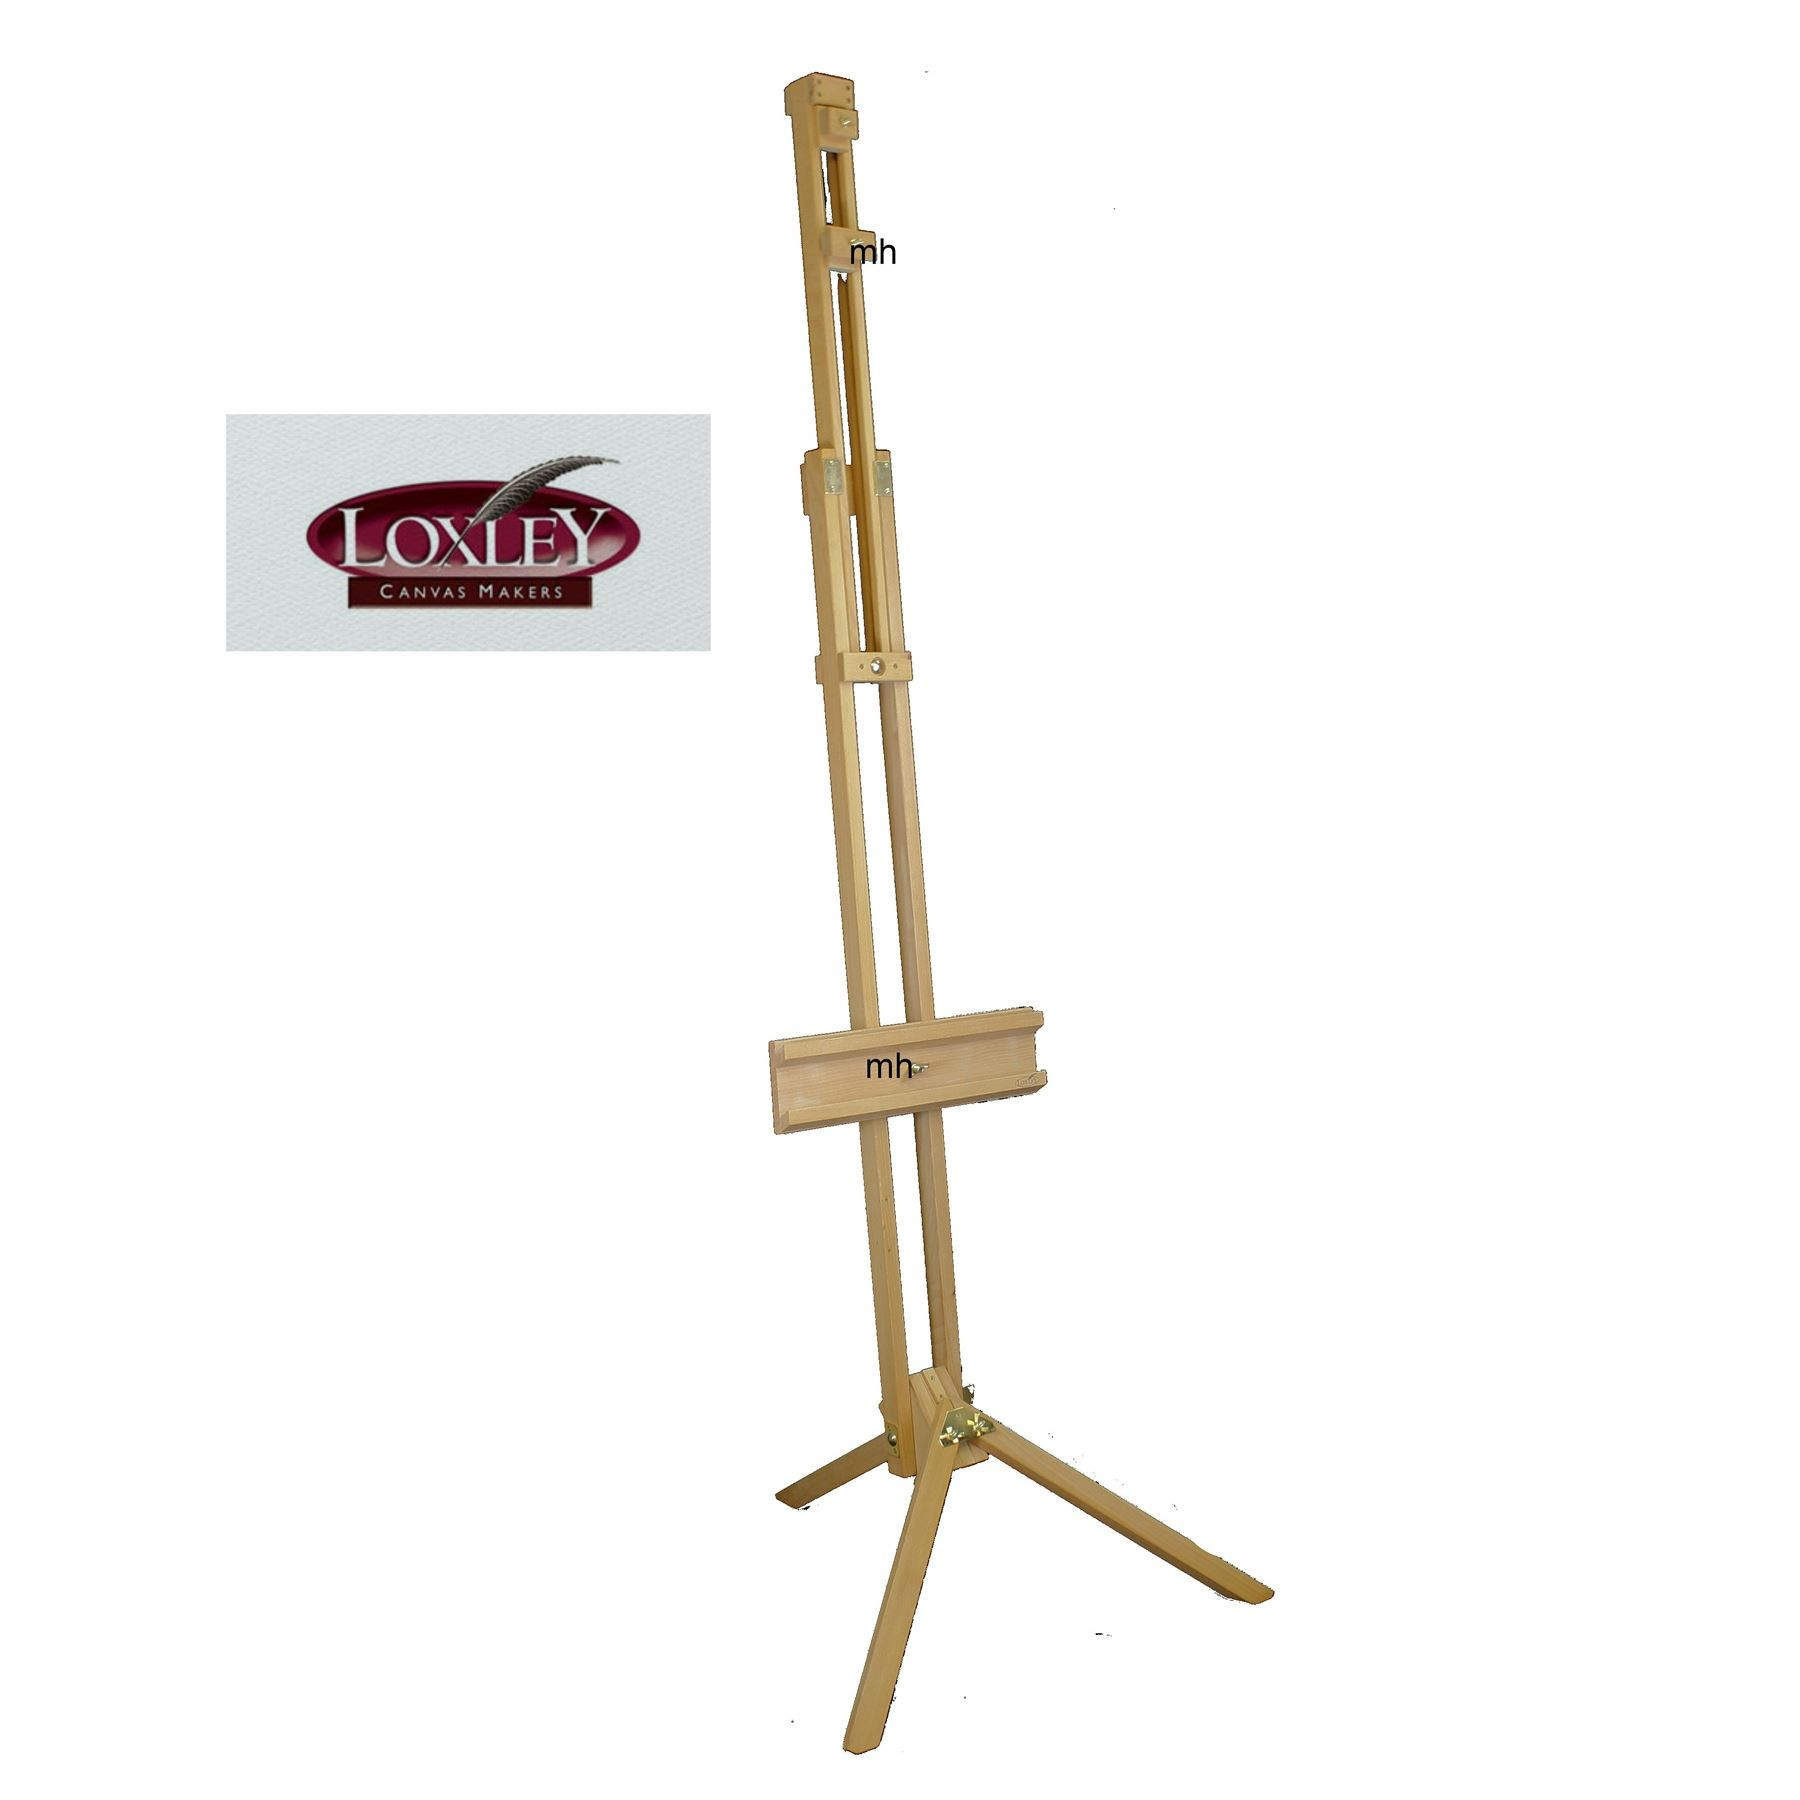 Loxley suffolk wooden easel